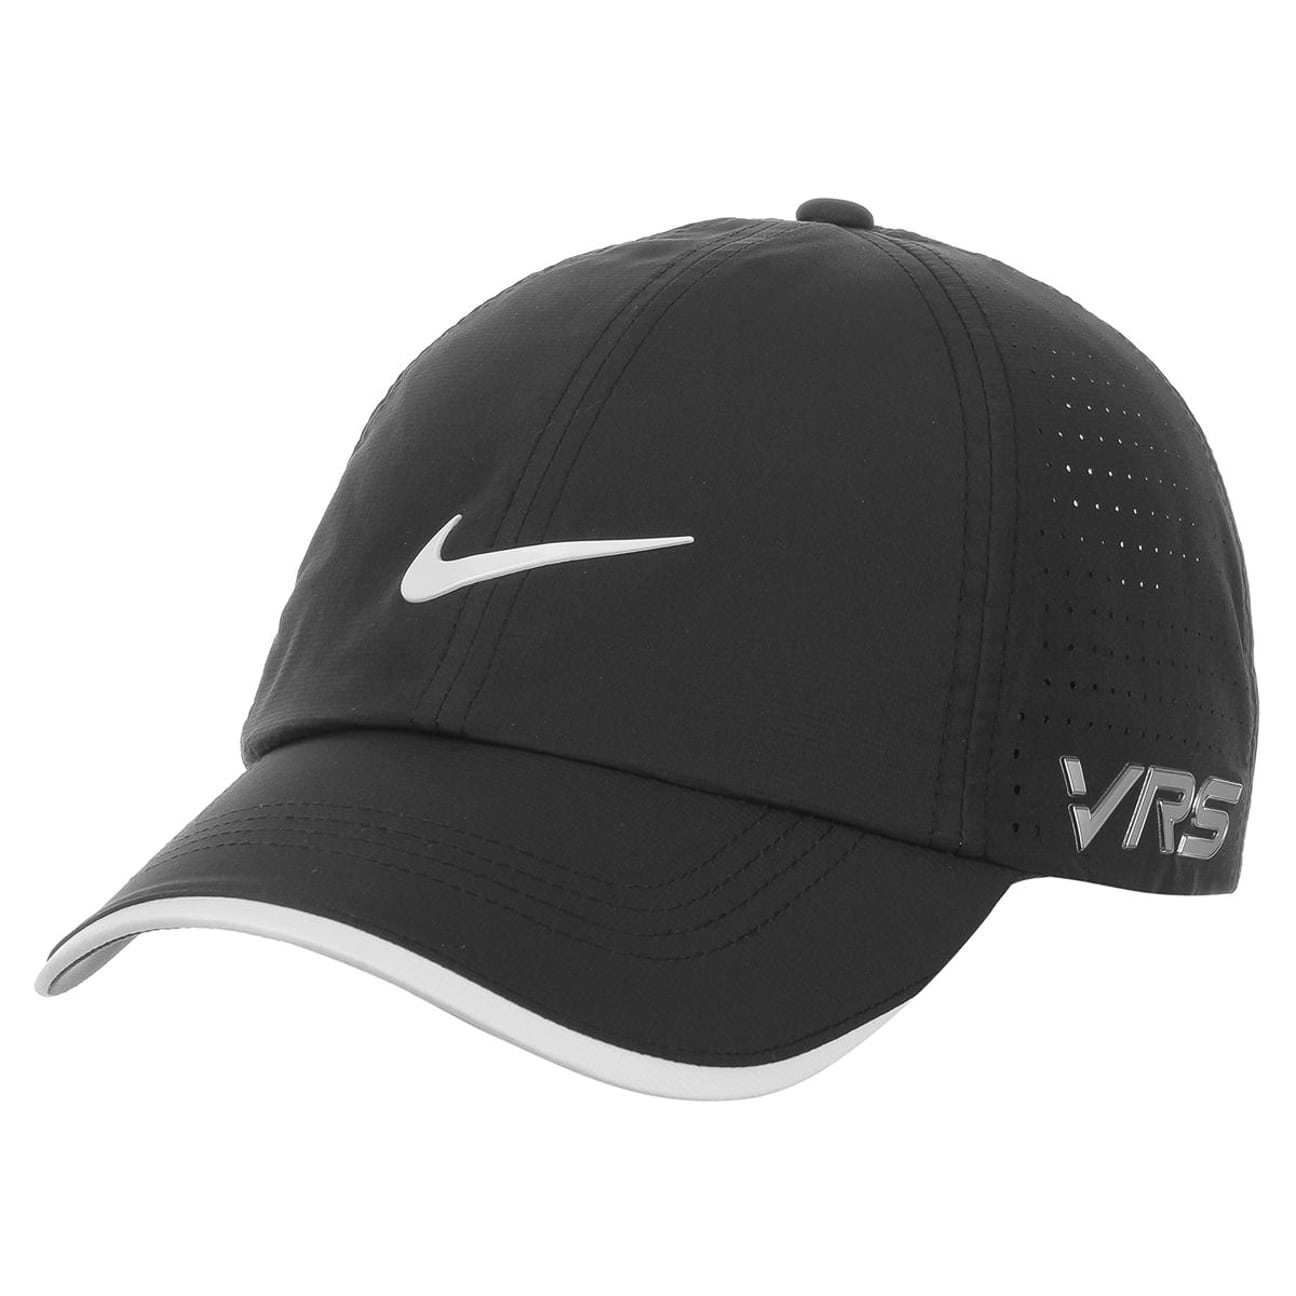 e1000470efe839 ... New Tour Perforated Golf Cap by Nike - black 1 ...